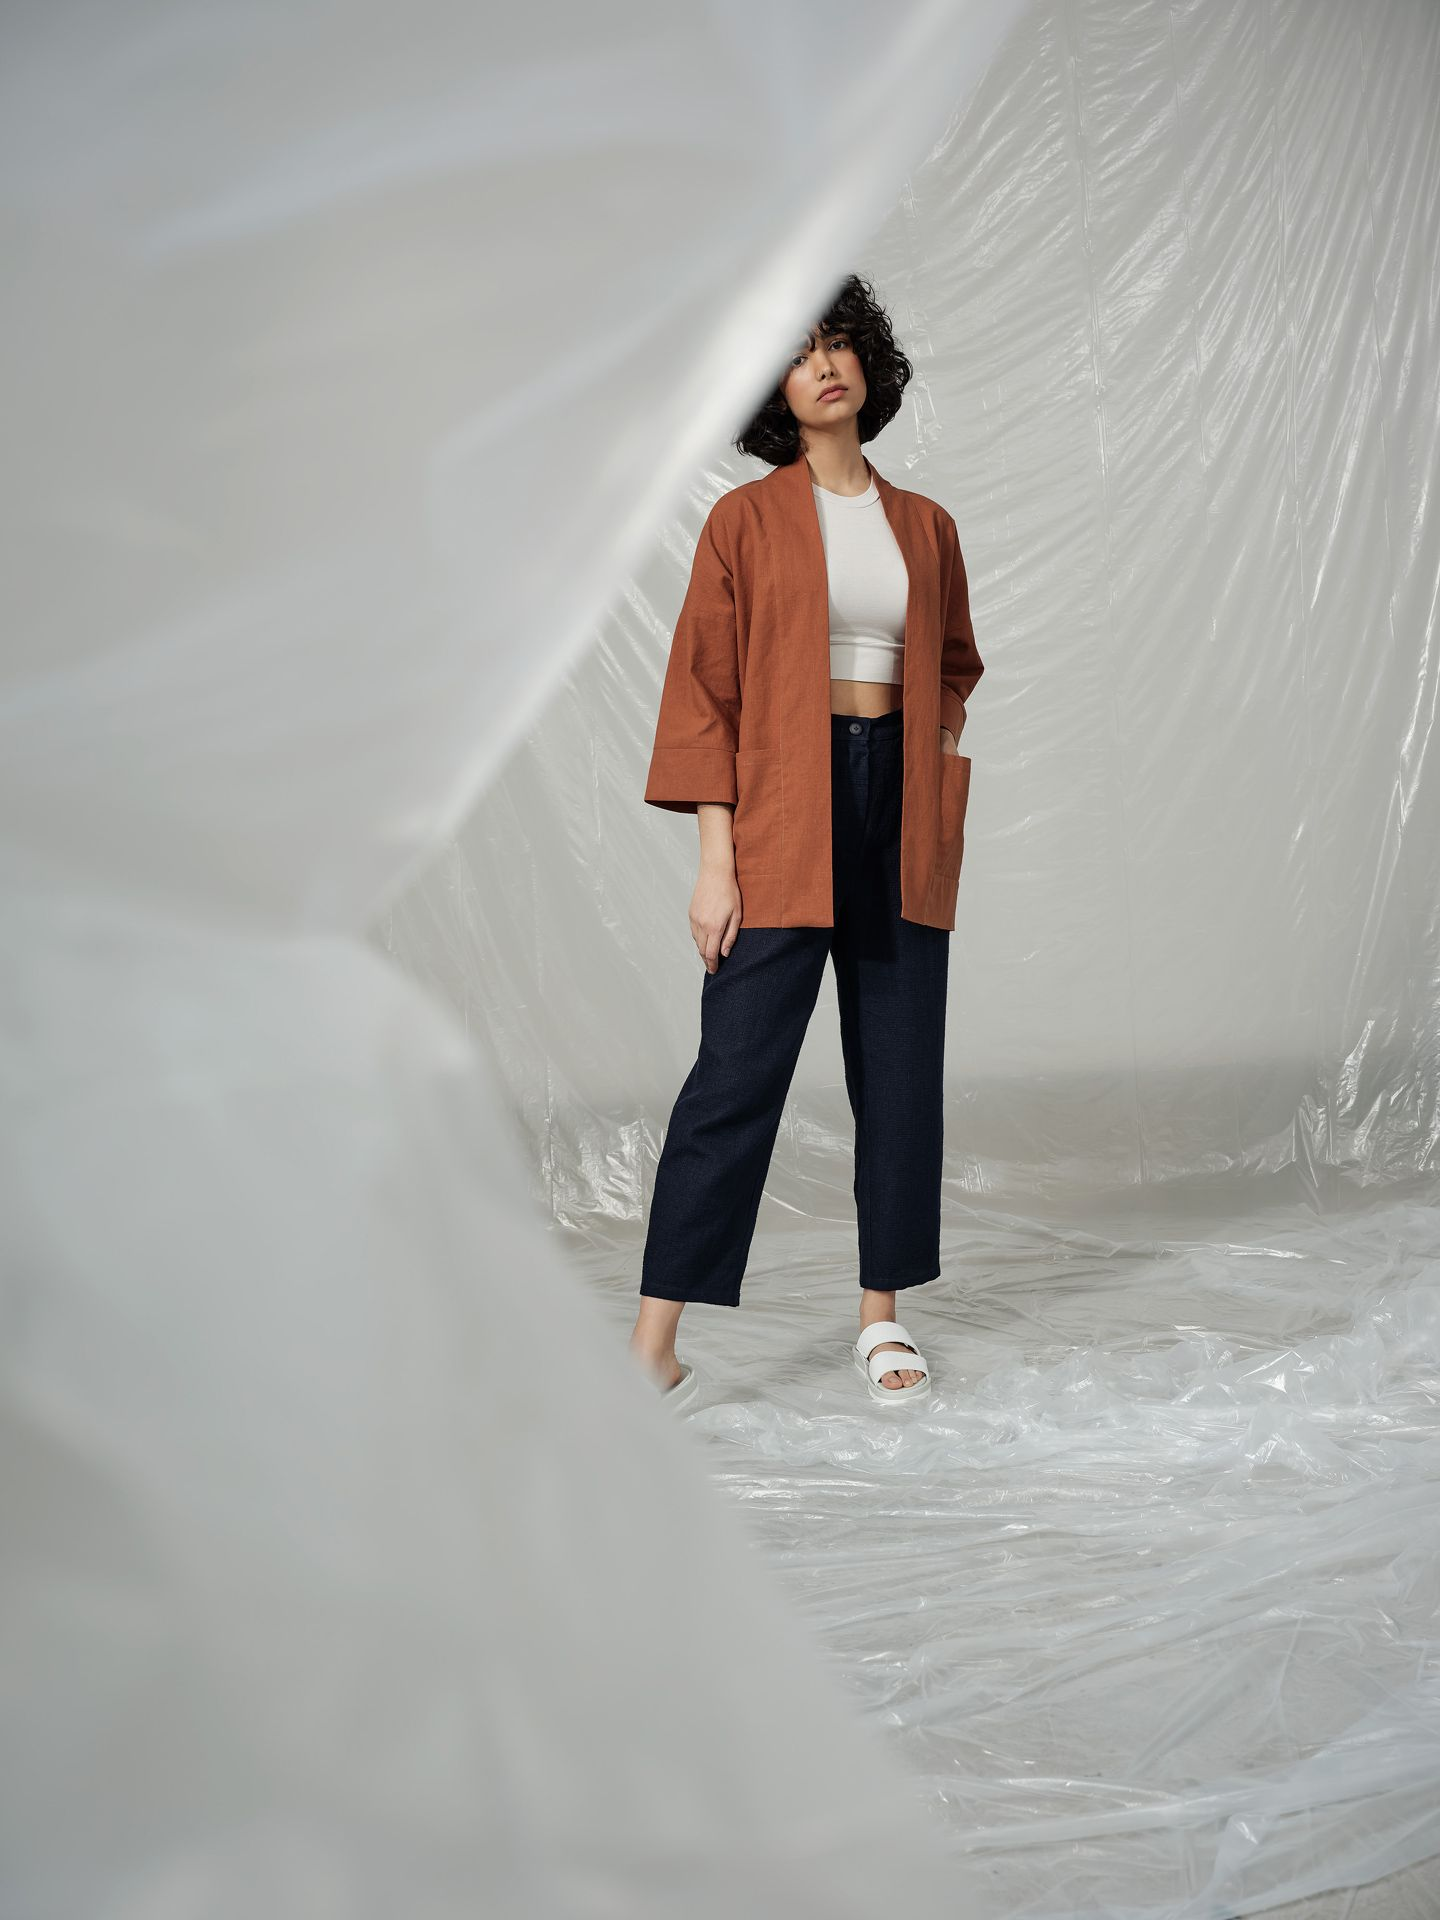 curly haired female model wearing brown jacket tight white crop top and baggy dark blue pants standing in room covered in plastic construction sheet looking at camera photographed by Maxyme G Delisle with artistic direction and styling by Studio TB